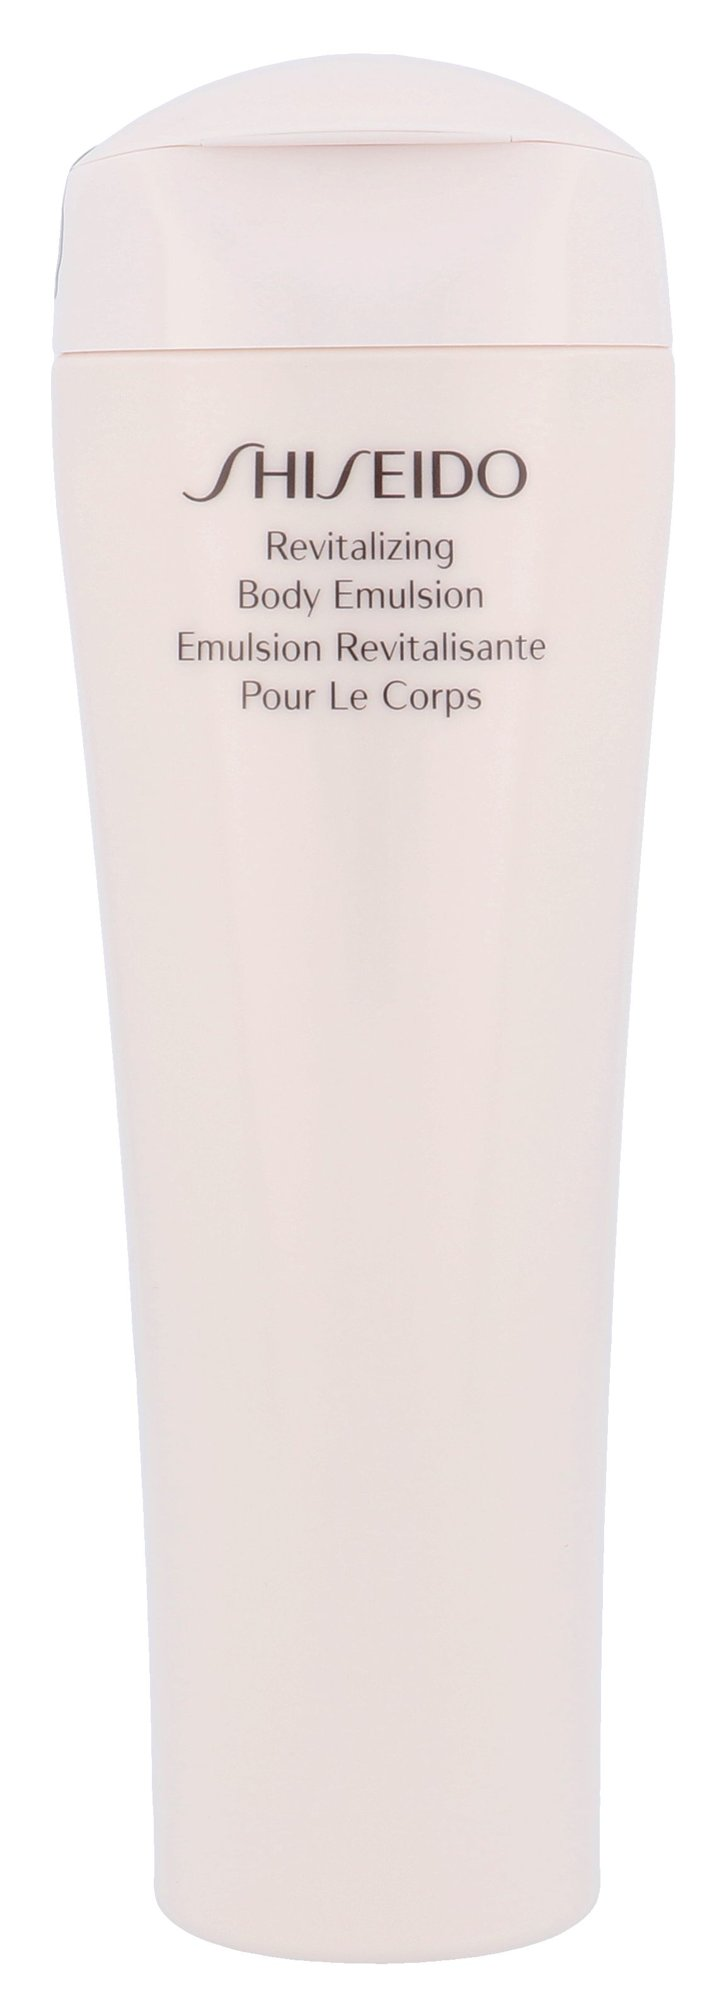 Shiseido Revitalizing Body Emulsion Cosmetic 200ml